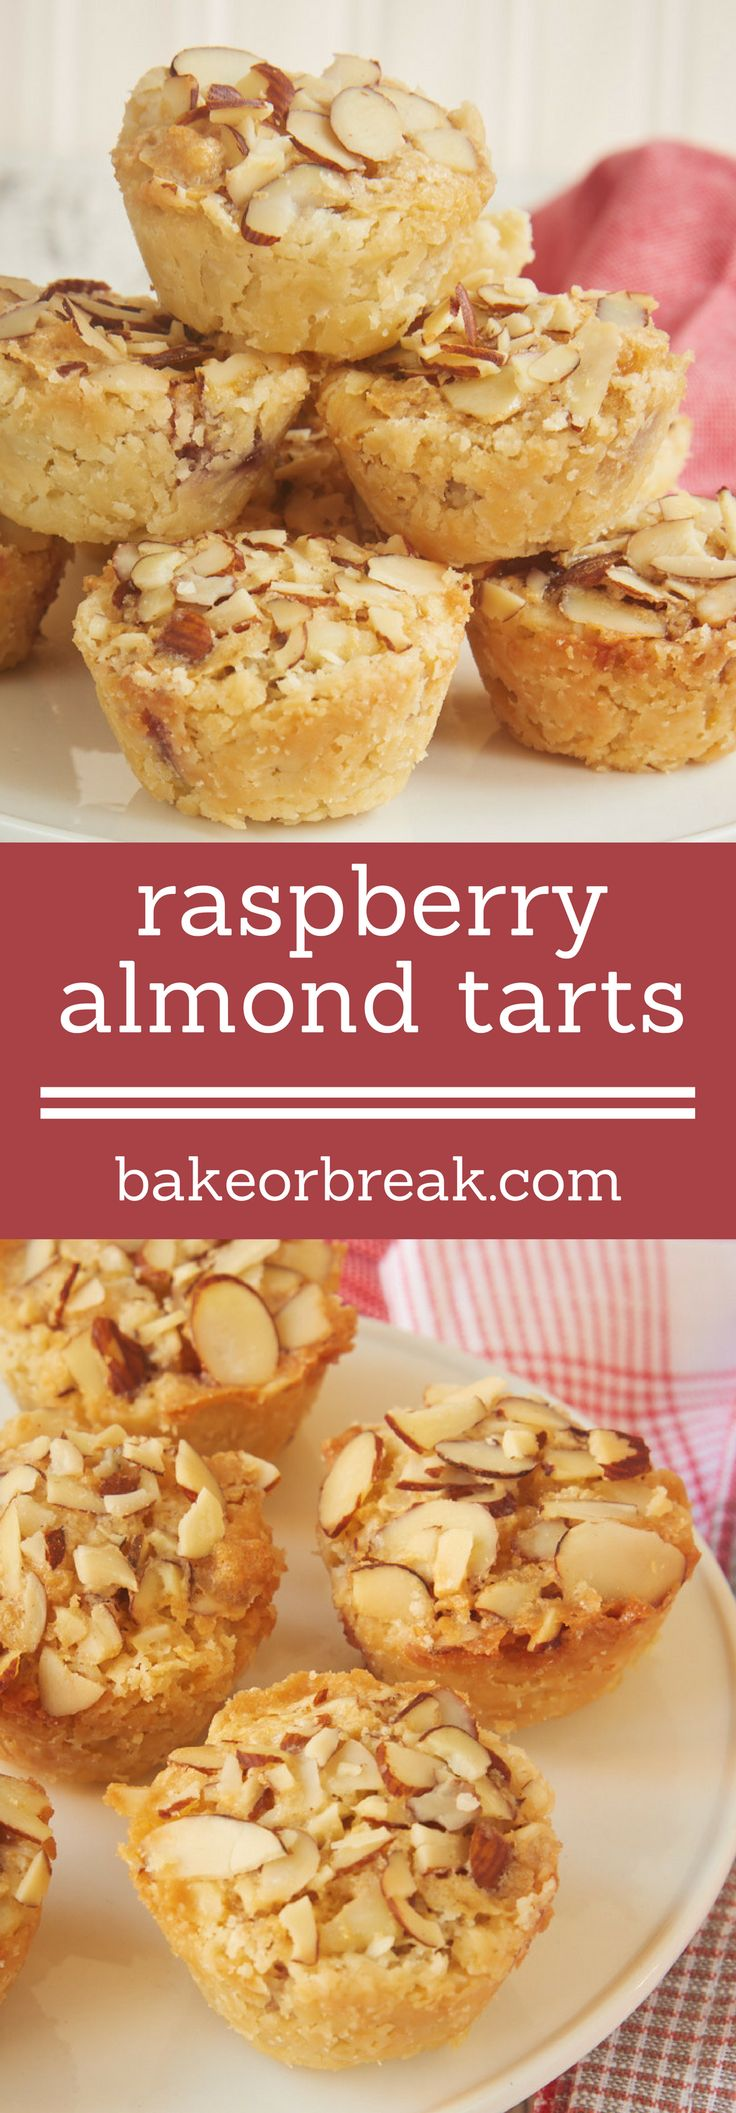 Raspberry Almond Tarts are simple bite-size tarts made with raspberry preserves and almond paste. Such a great flavor combination! - Bake or Break ~ http://www.bakeorbreak.com